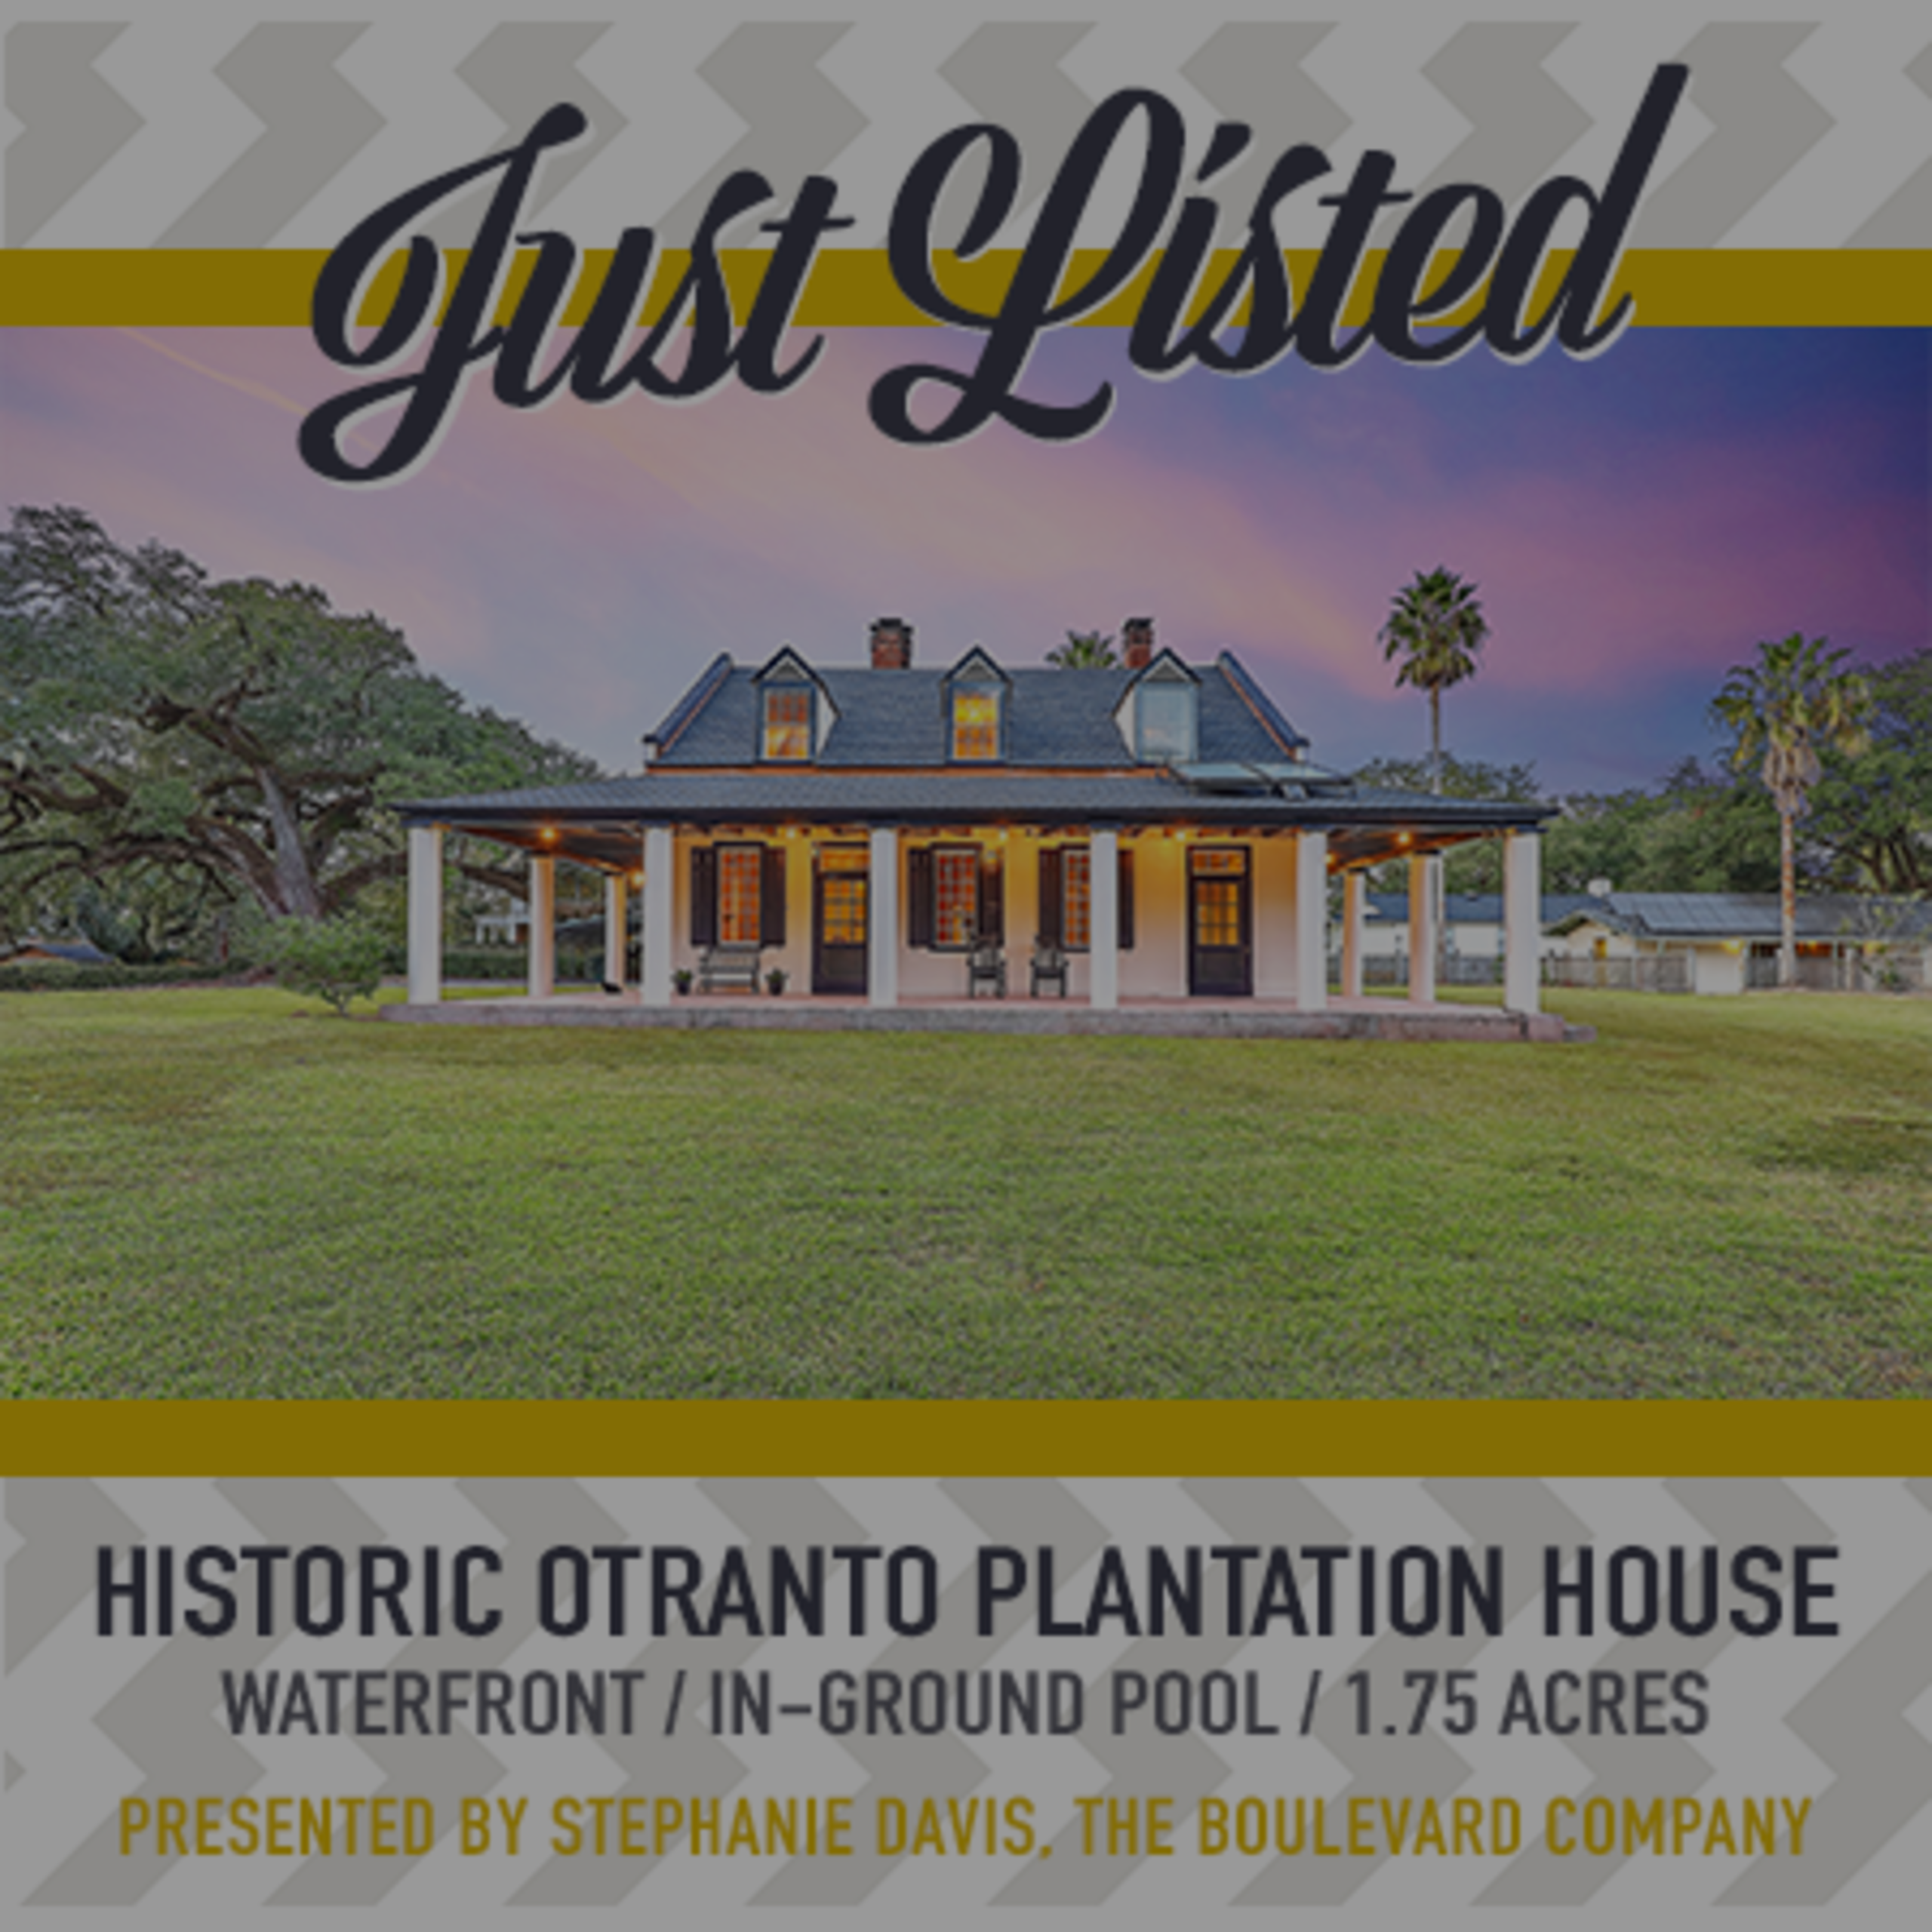 New Listing: Historic Otranto Plantation House